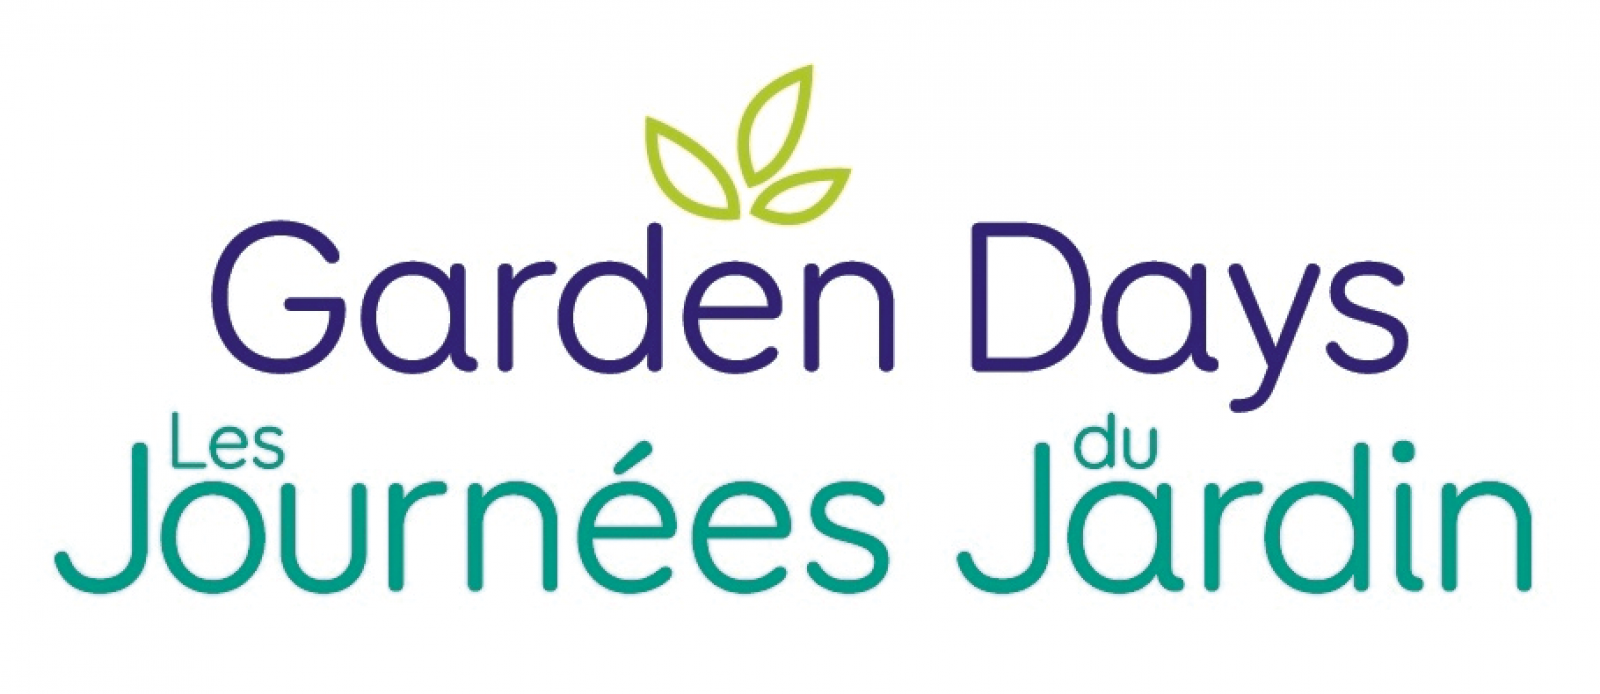 Join Garden Days celebrations in June